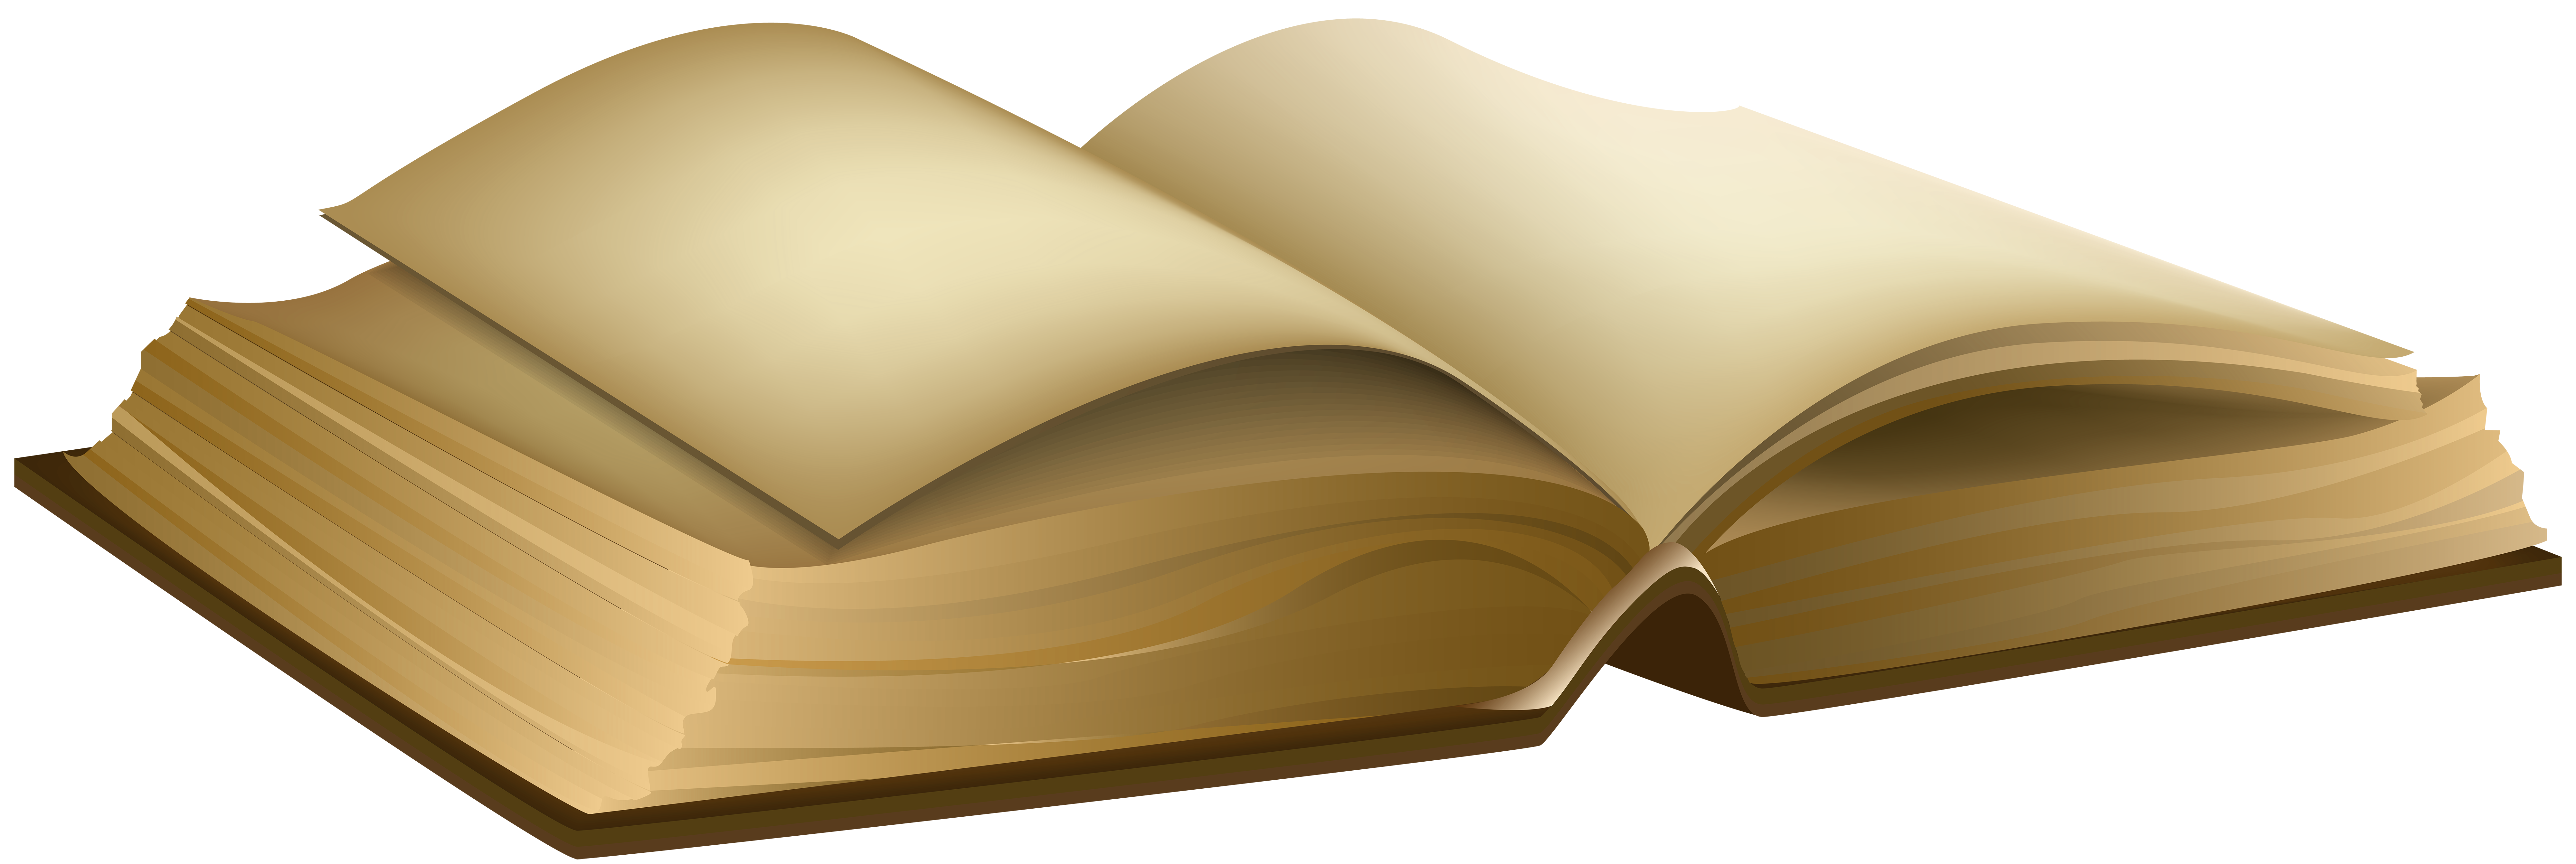 Old Book PNG Clipart Image.